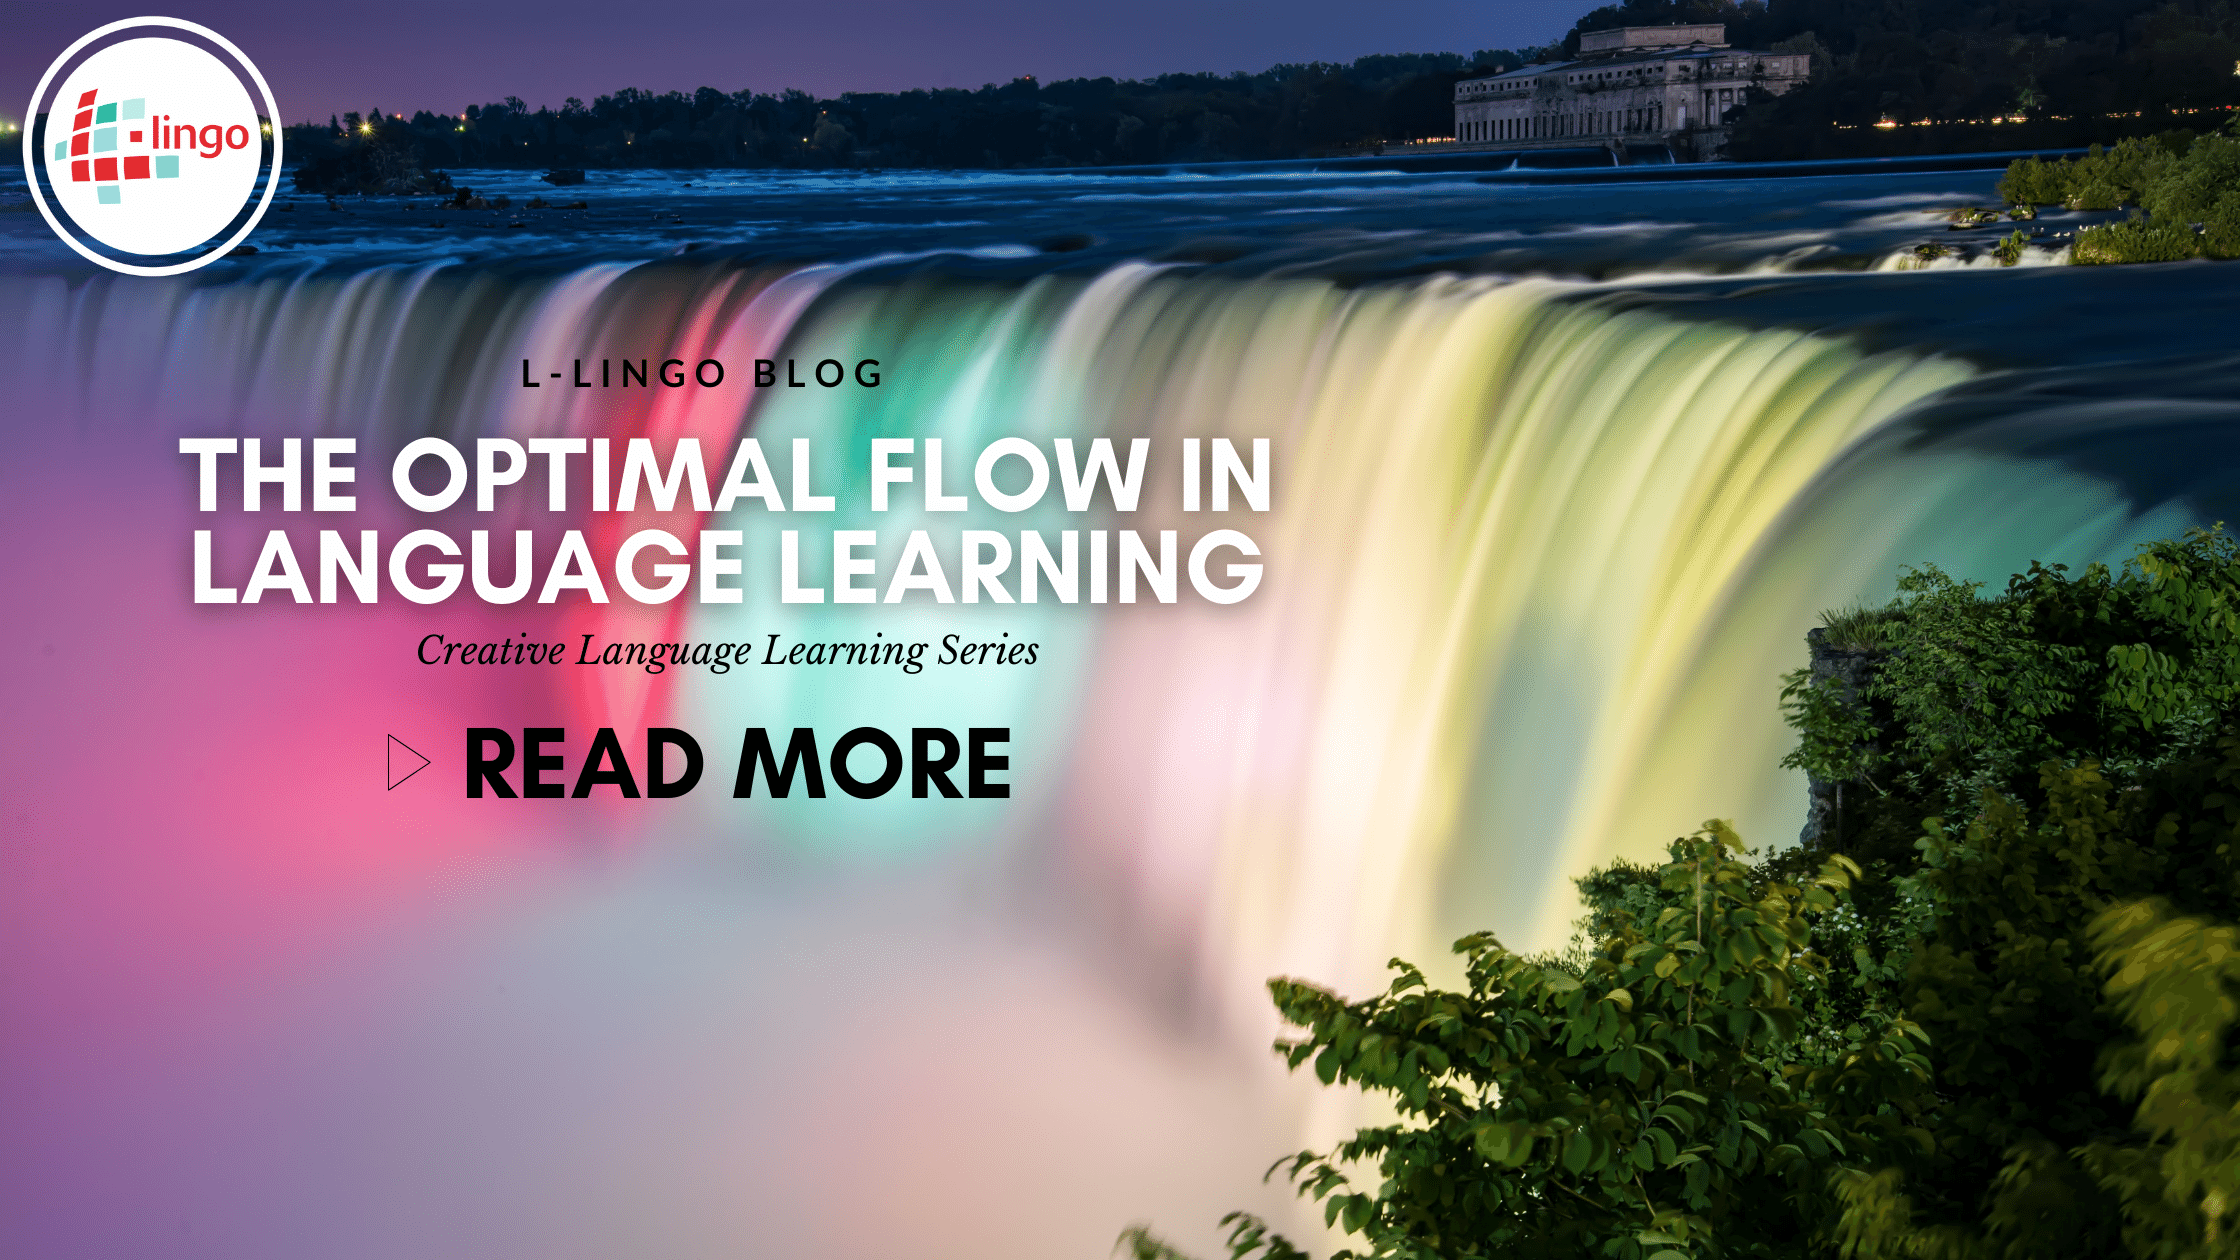 The Optimal Flow In Language Learning - L-Lingo Blog